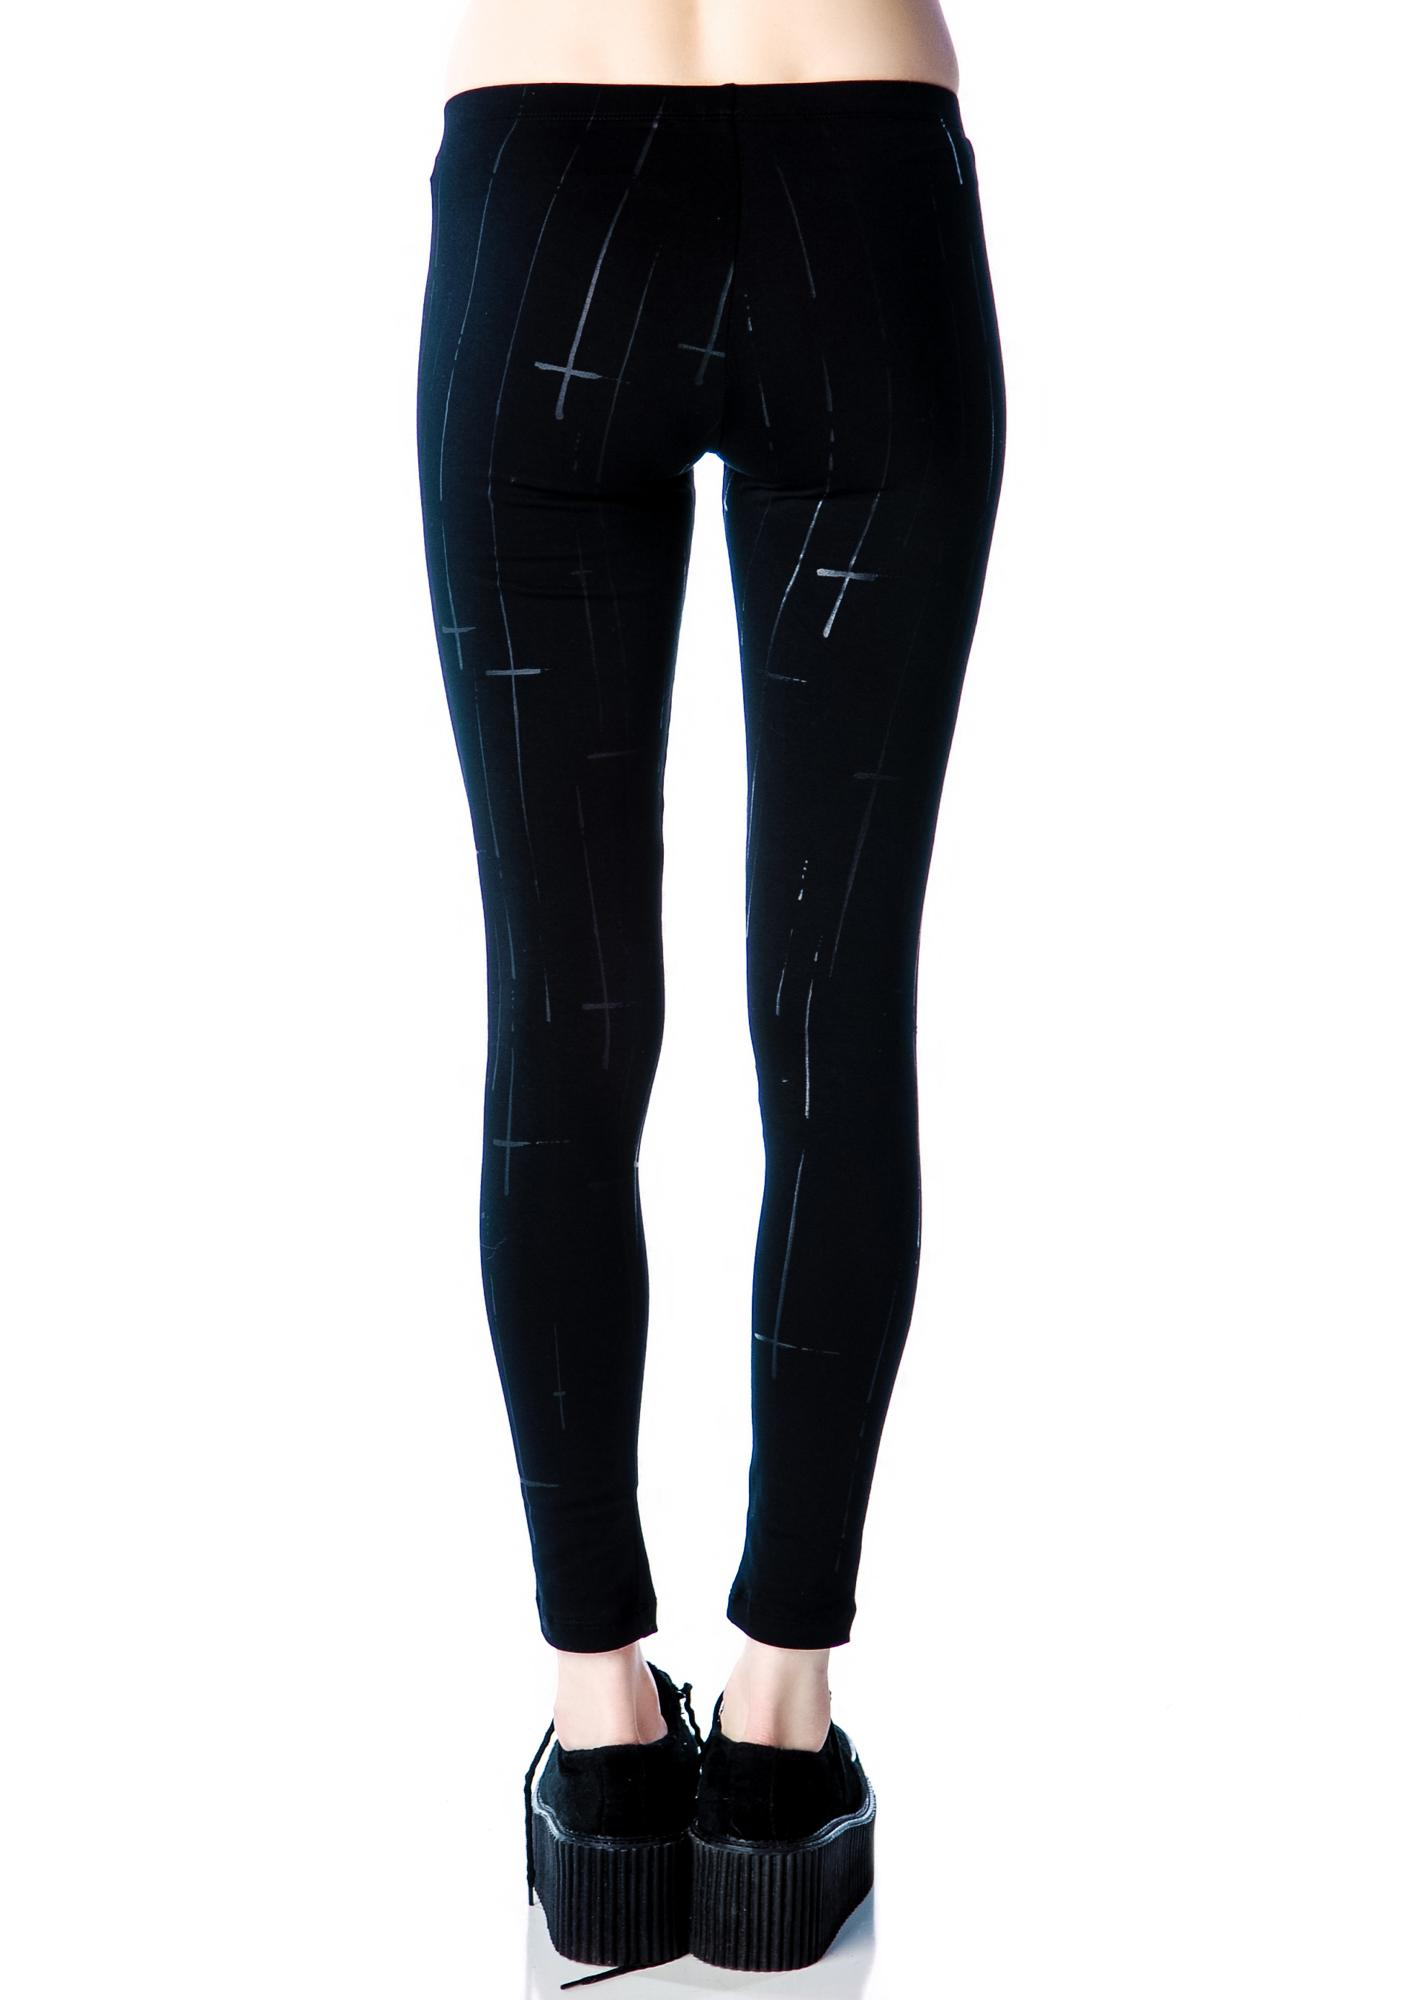 Lip Service Raining Crosses Leggings